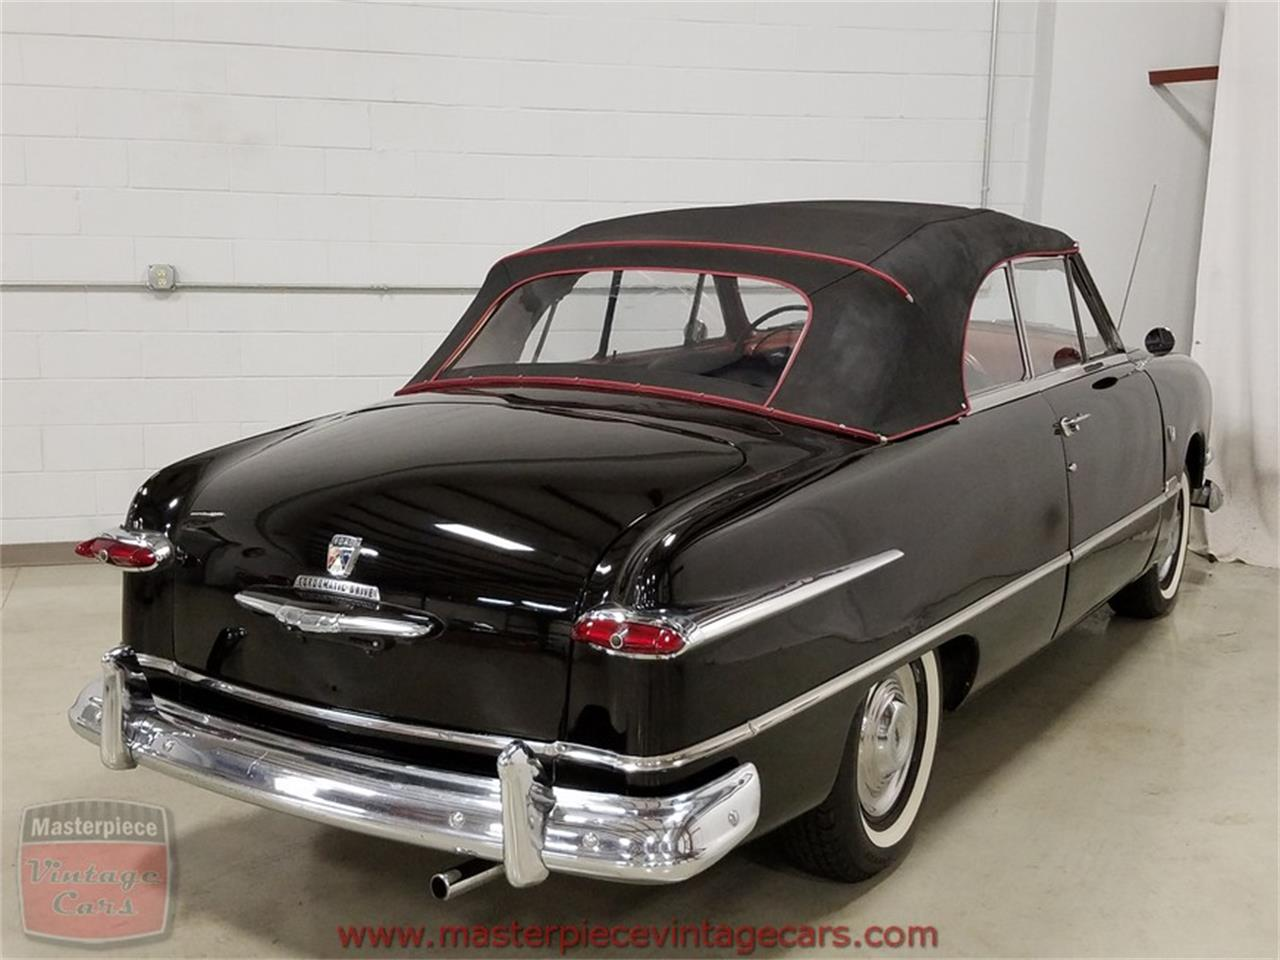 Large Picture of '51 Ford Convertible located in Whiteland Indiana Offered by Masterpiece Vintage Cars - KAMX